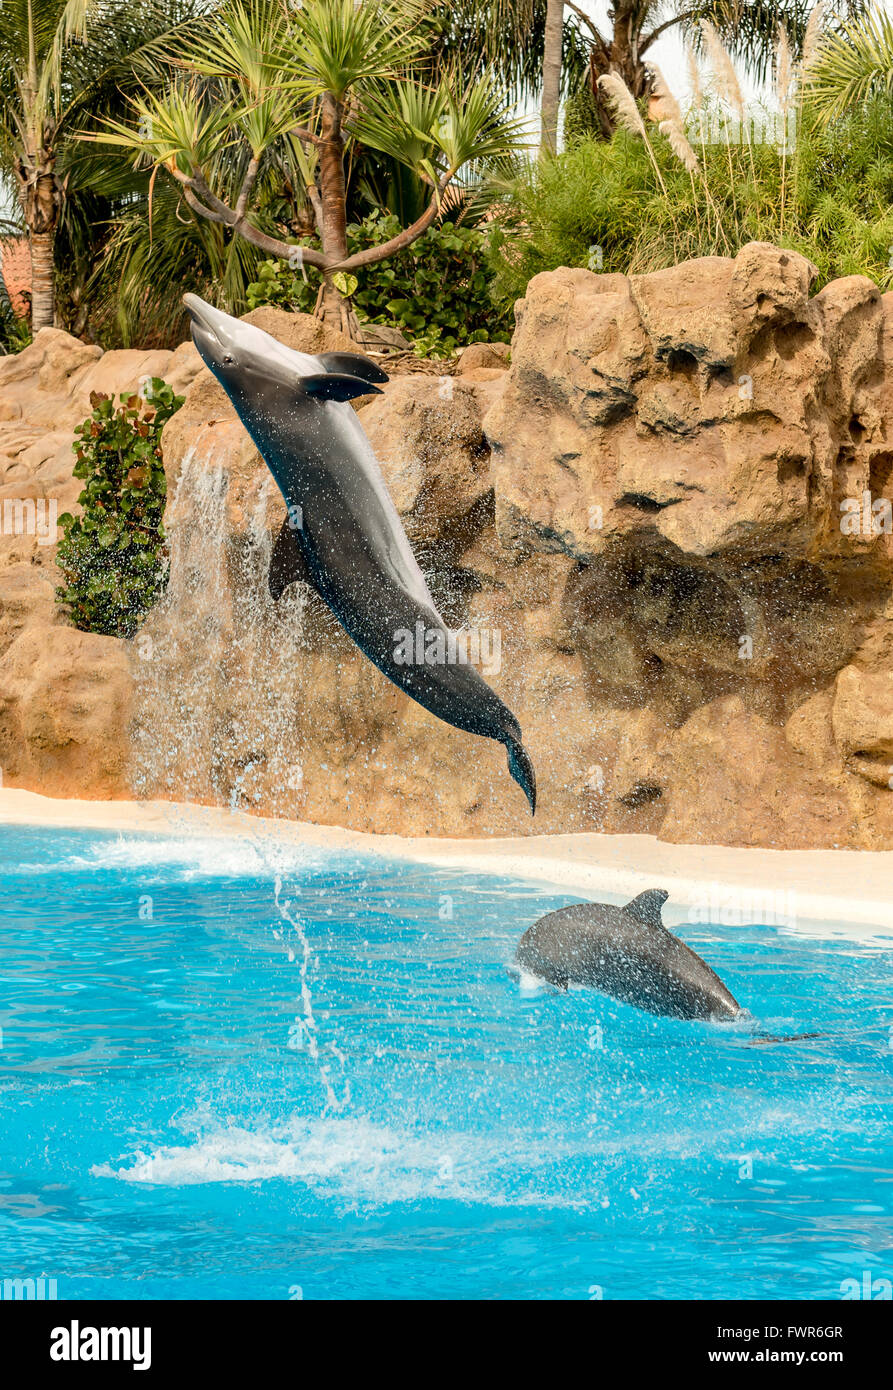 DOLPHINS PERFORMING AT LORO PARQUE, PUERTO DE LA CRUZ, TENERIFE - Stock Image